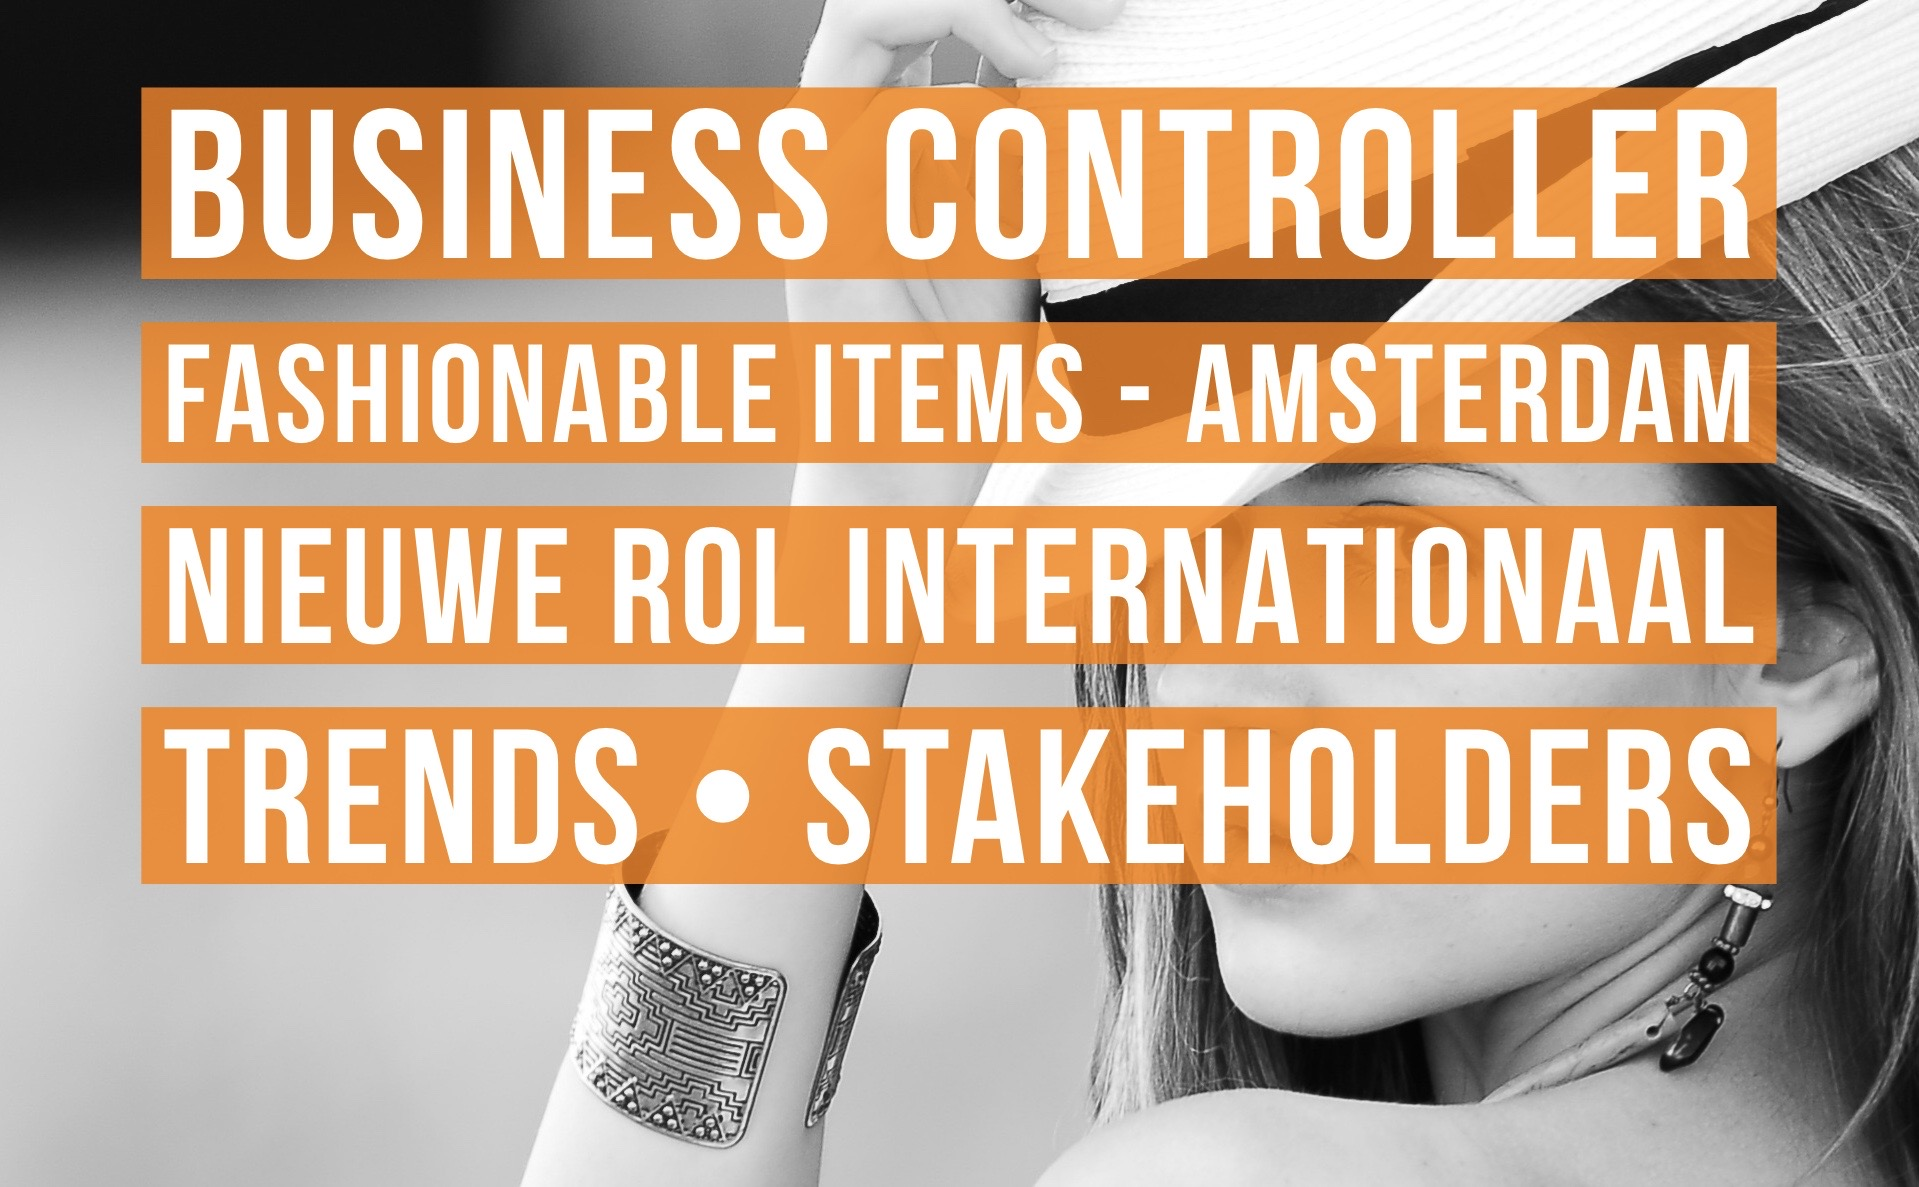 Business Controller fashionable items vacature amsterdam